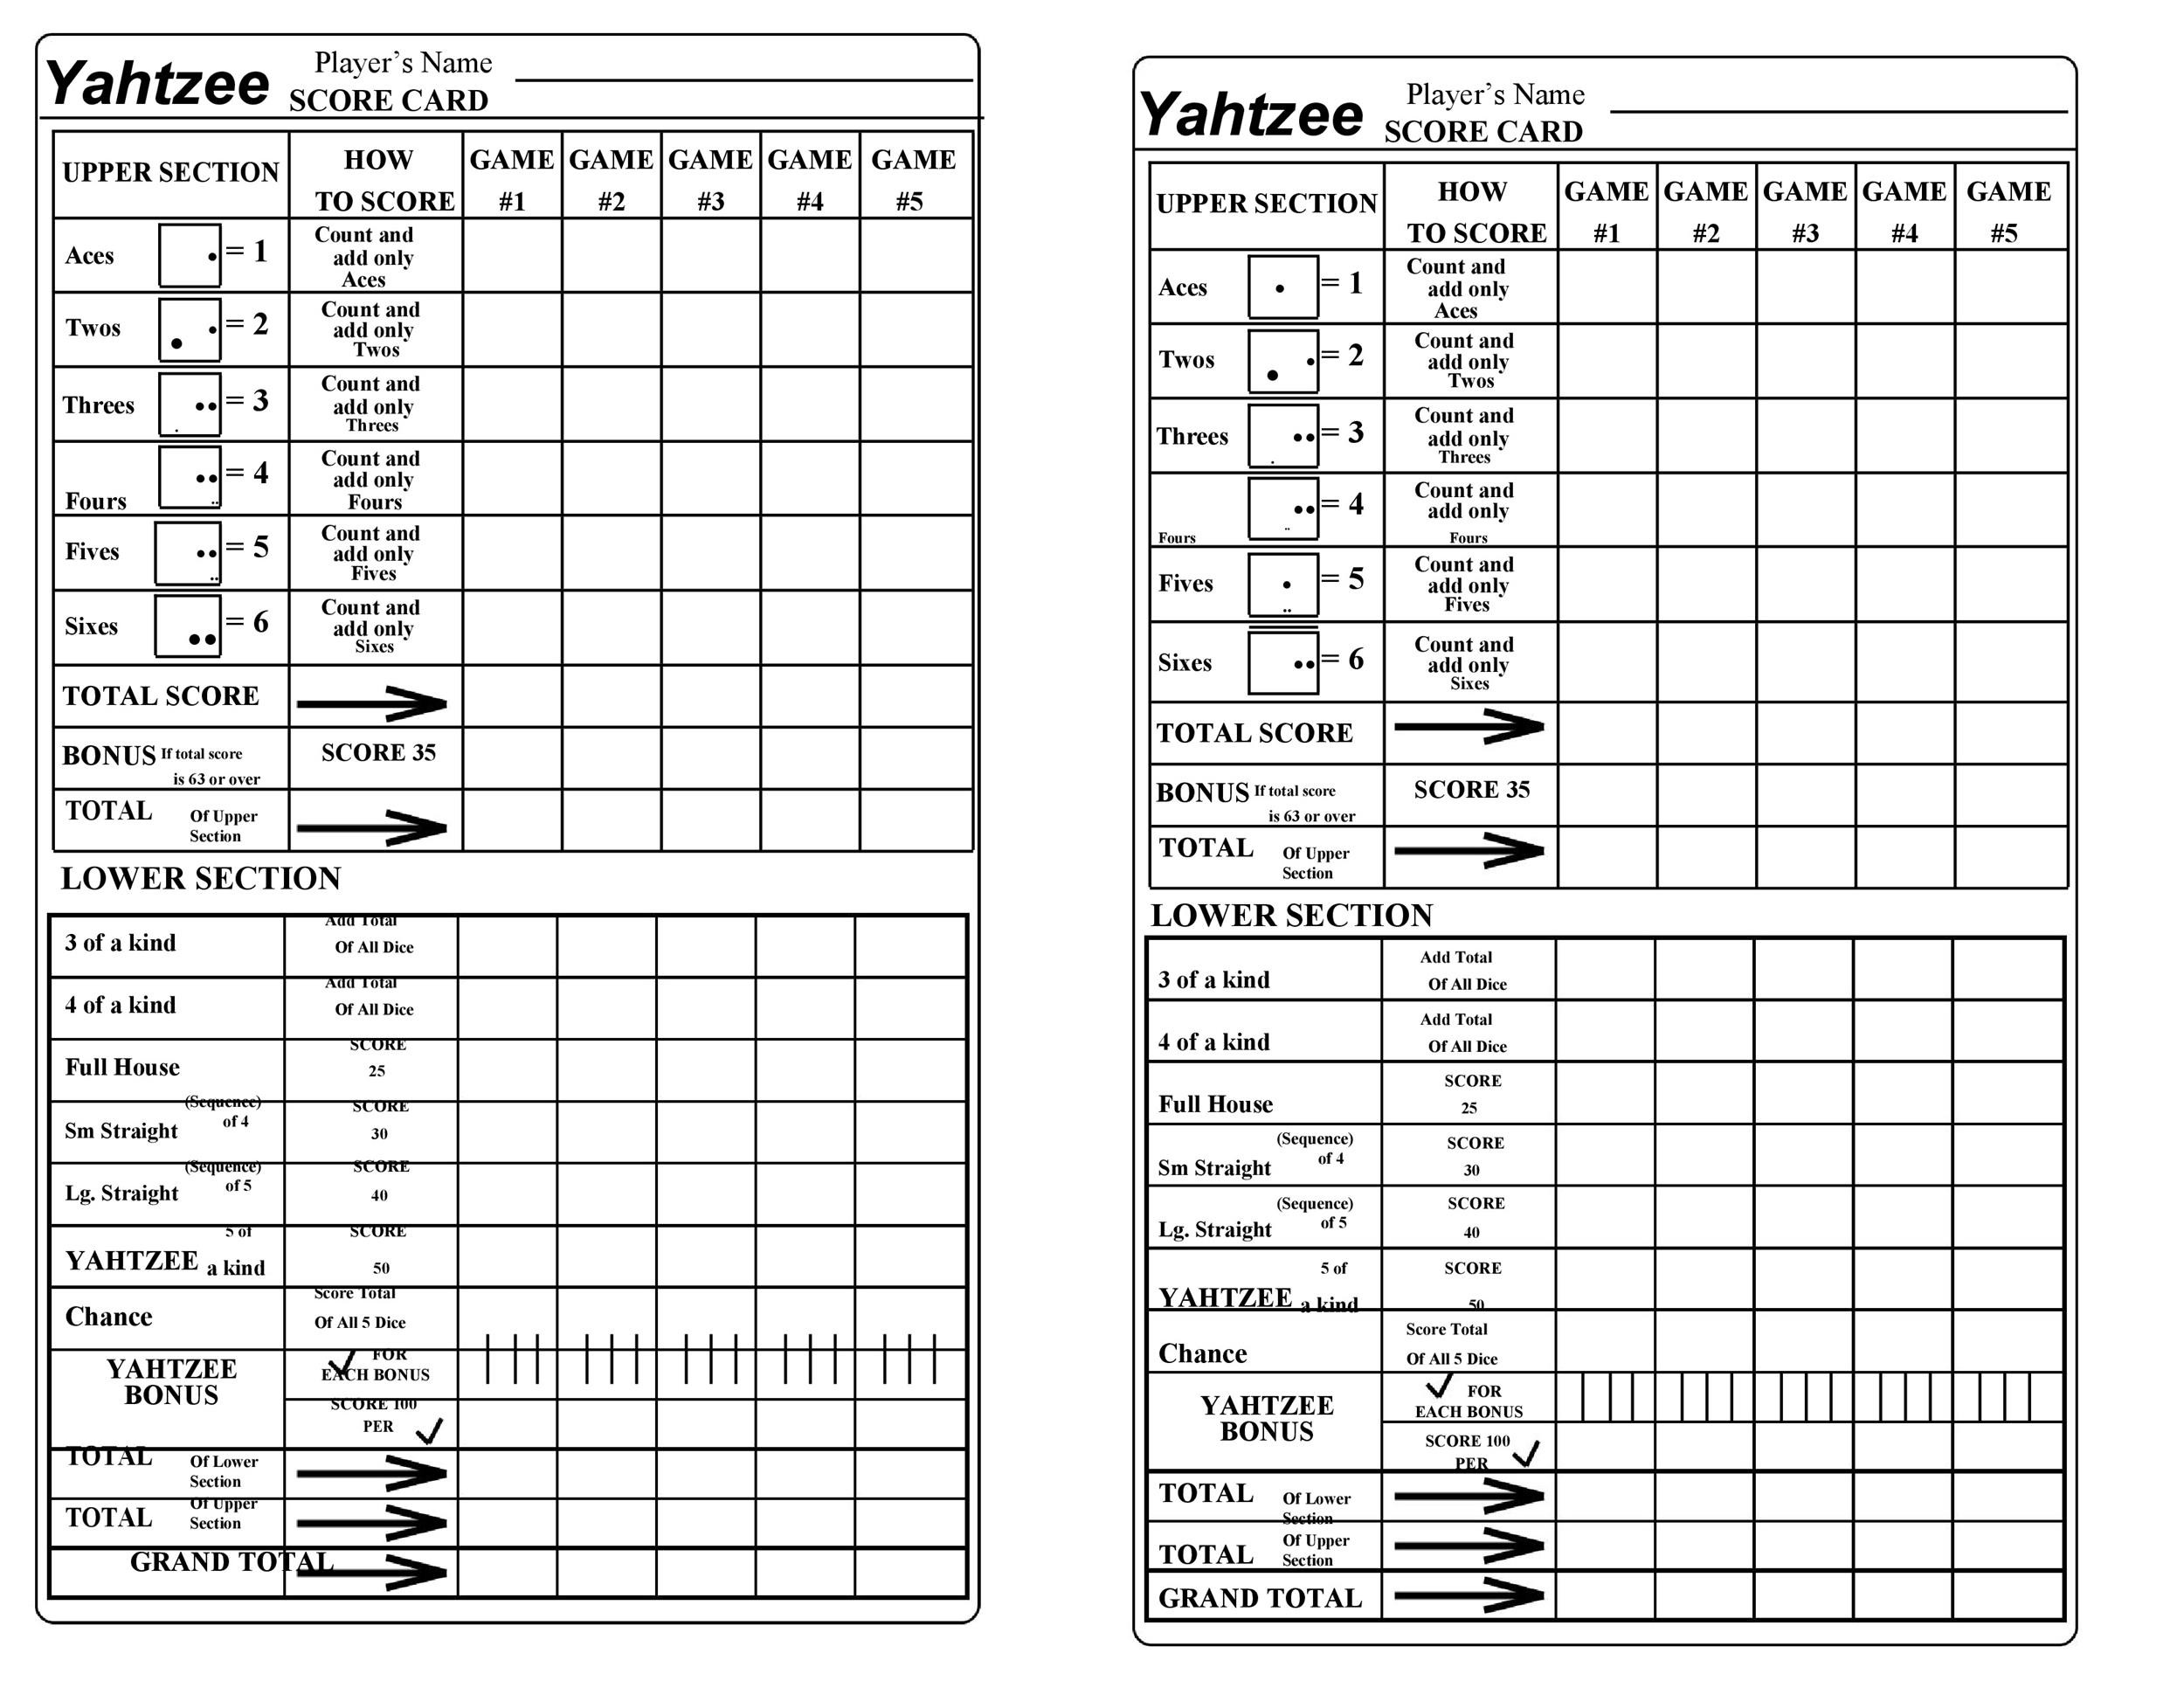 Nerdy image for yahtzee printable score cards